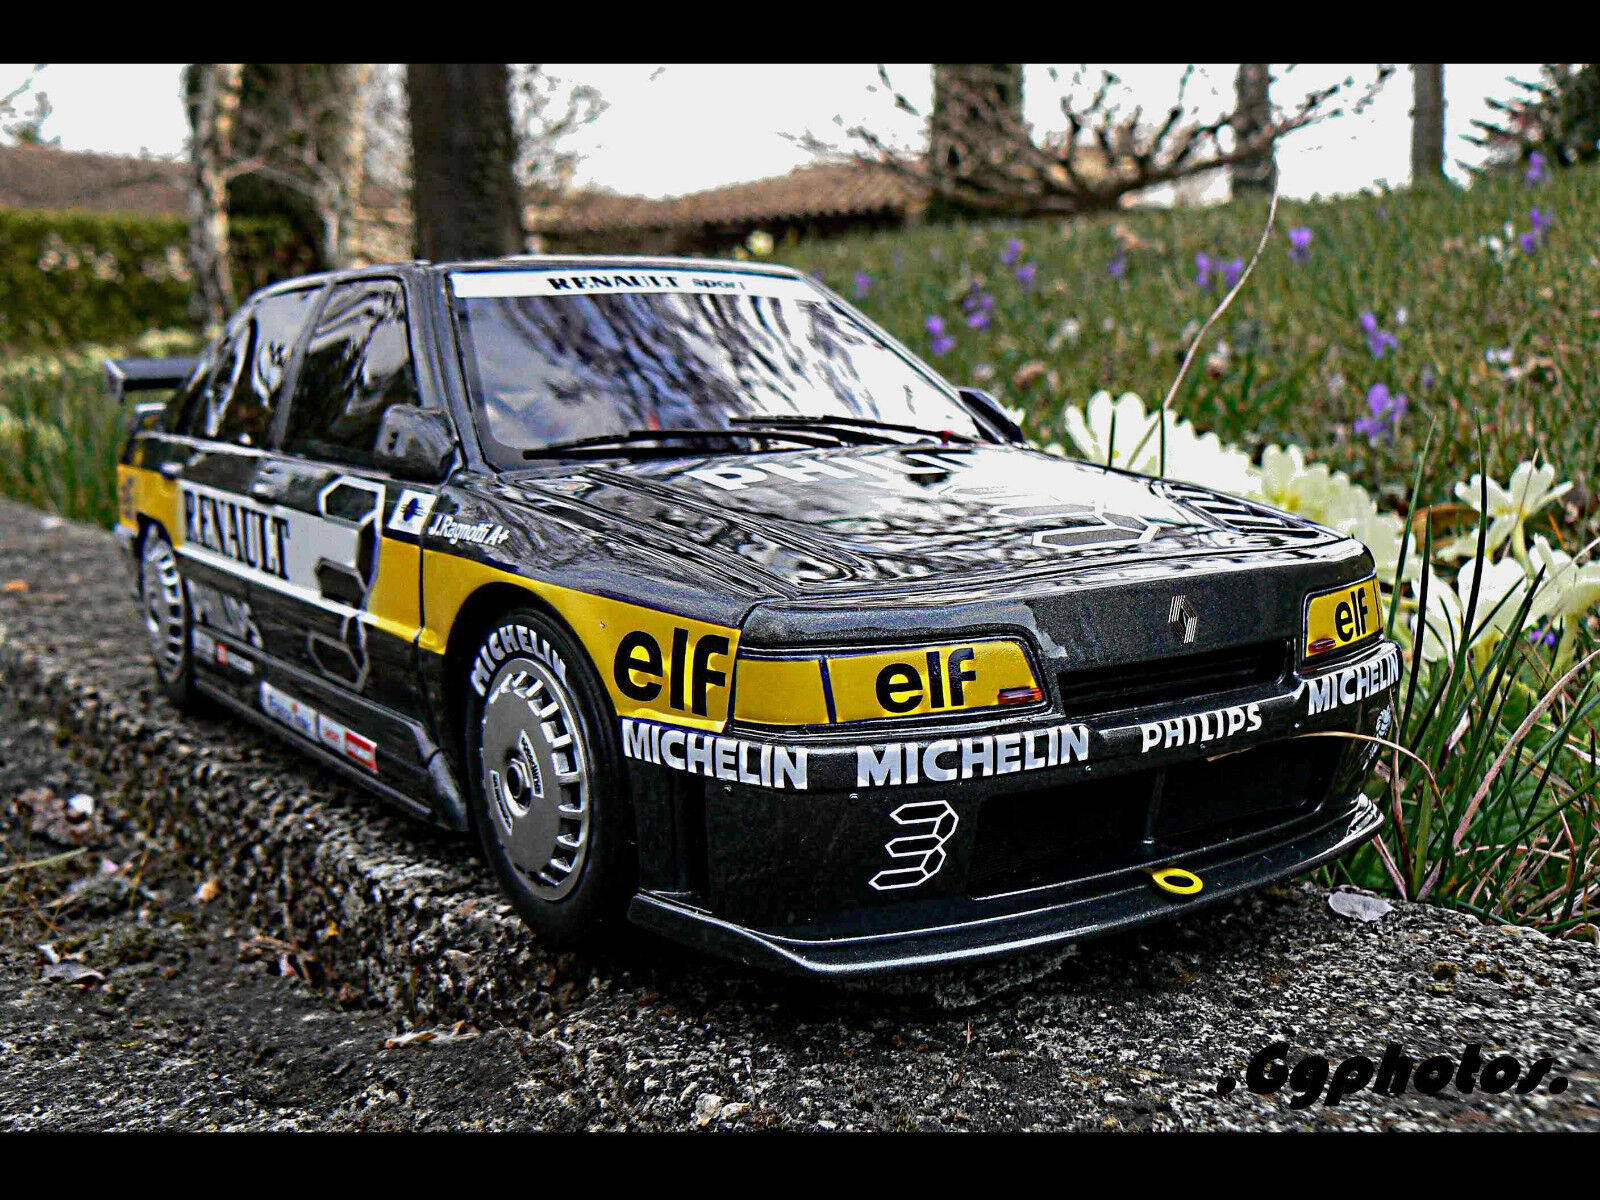 RENAULT 21 r21 TURBO SUPERPRODUCTION RAGNOTTI OTTOMOBILE ottomodels  OT041 .